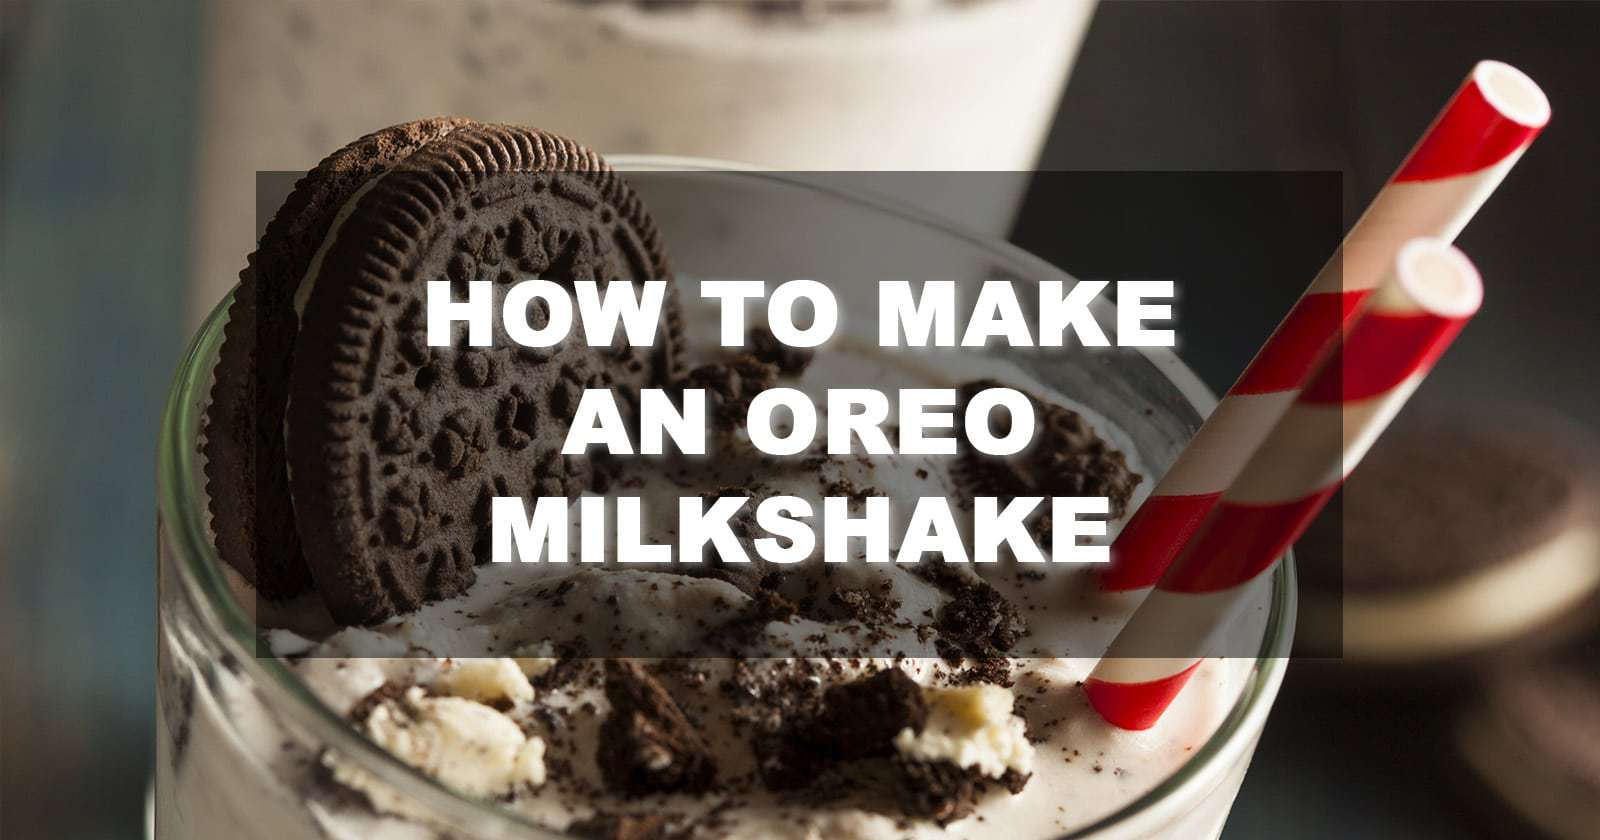 How to Make an Oreo Milkshake